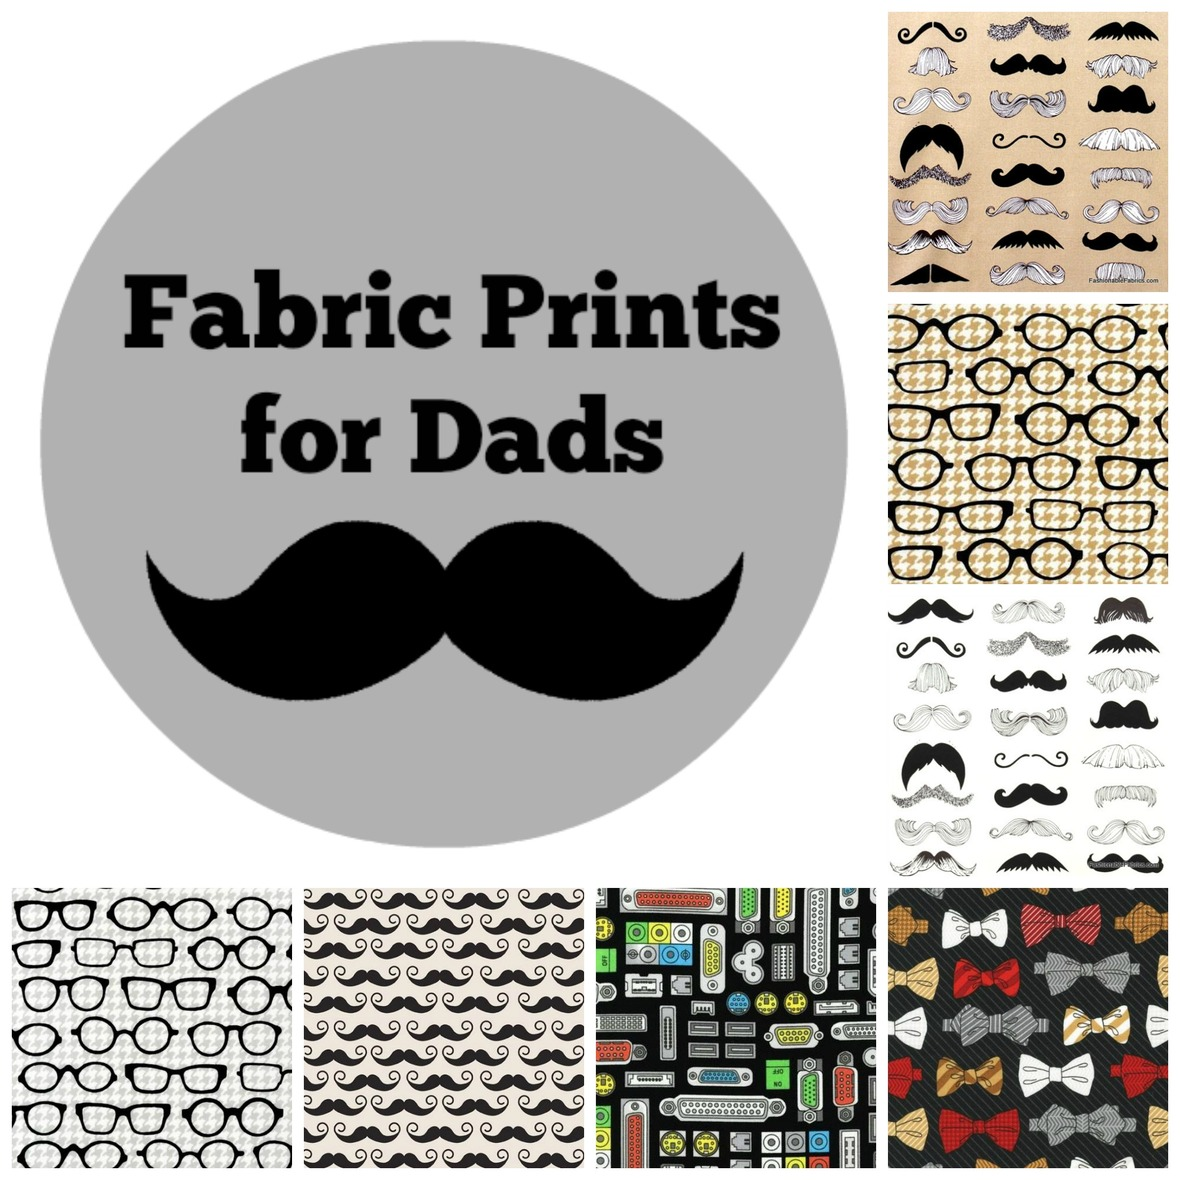 fabric prints for dad collage 2